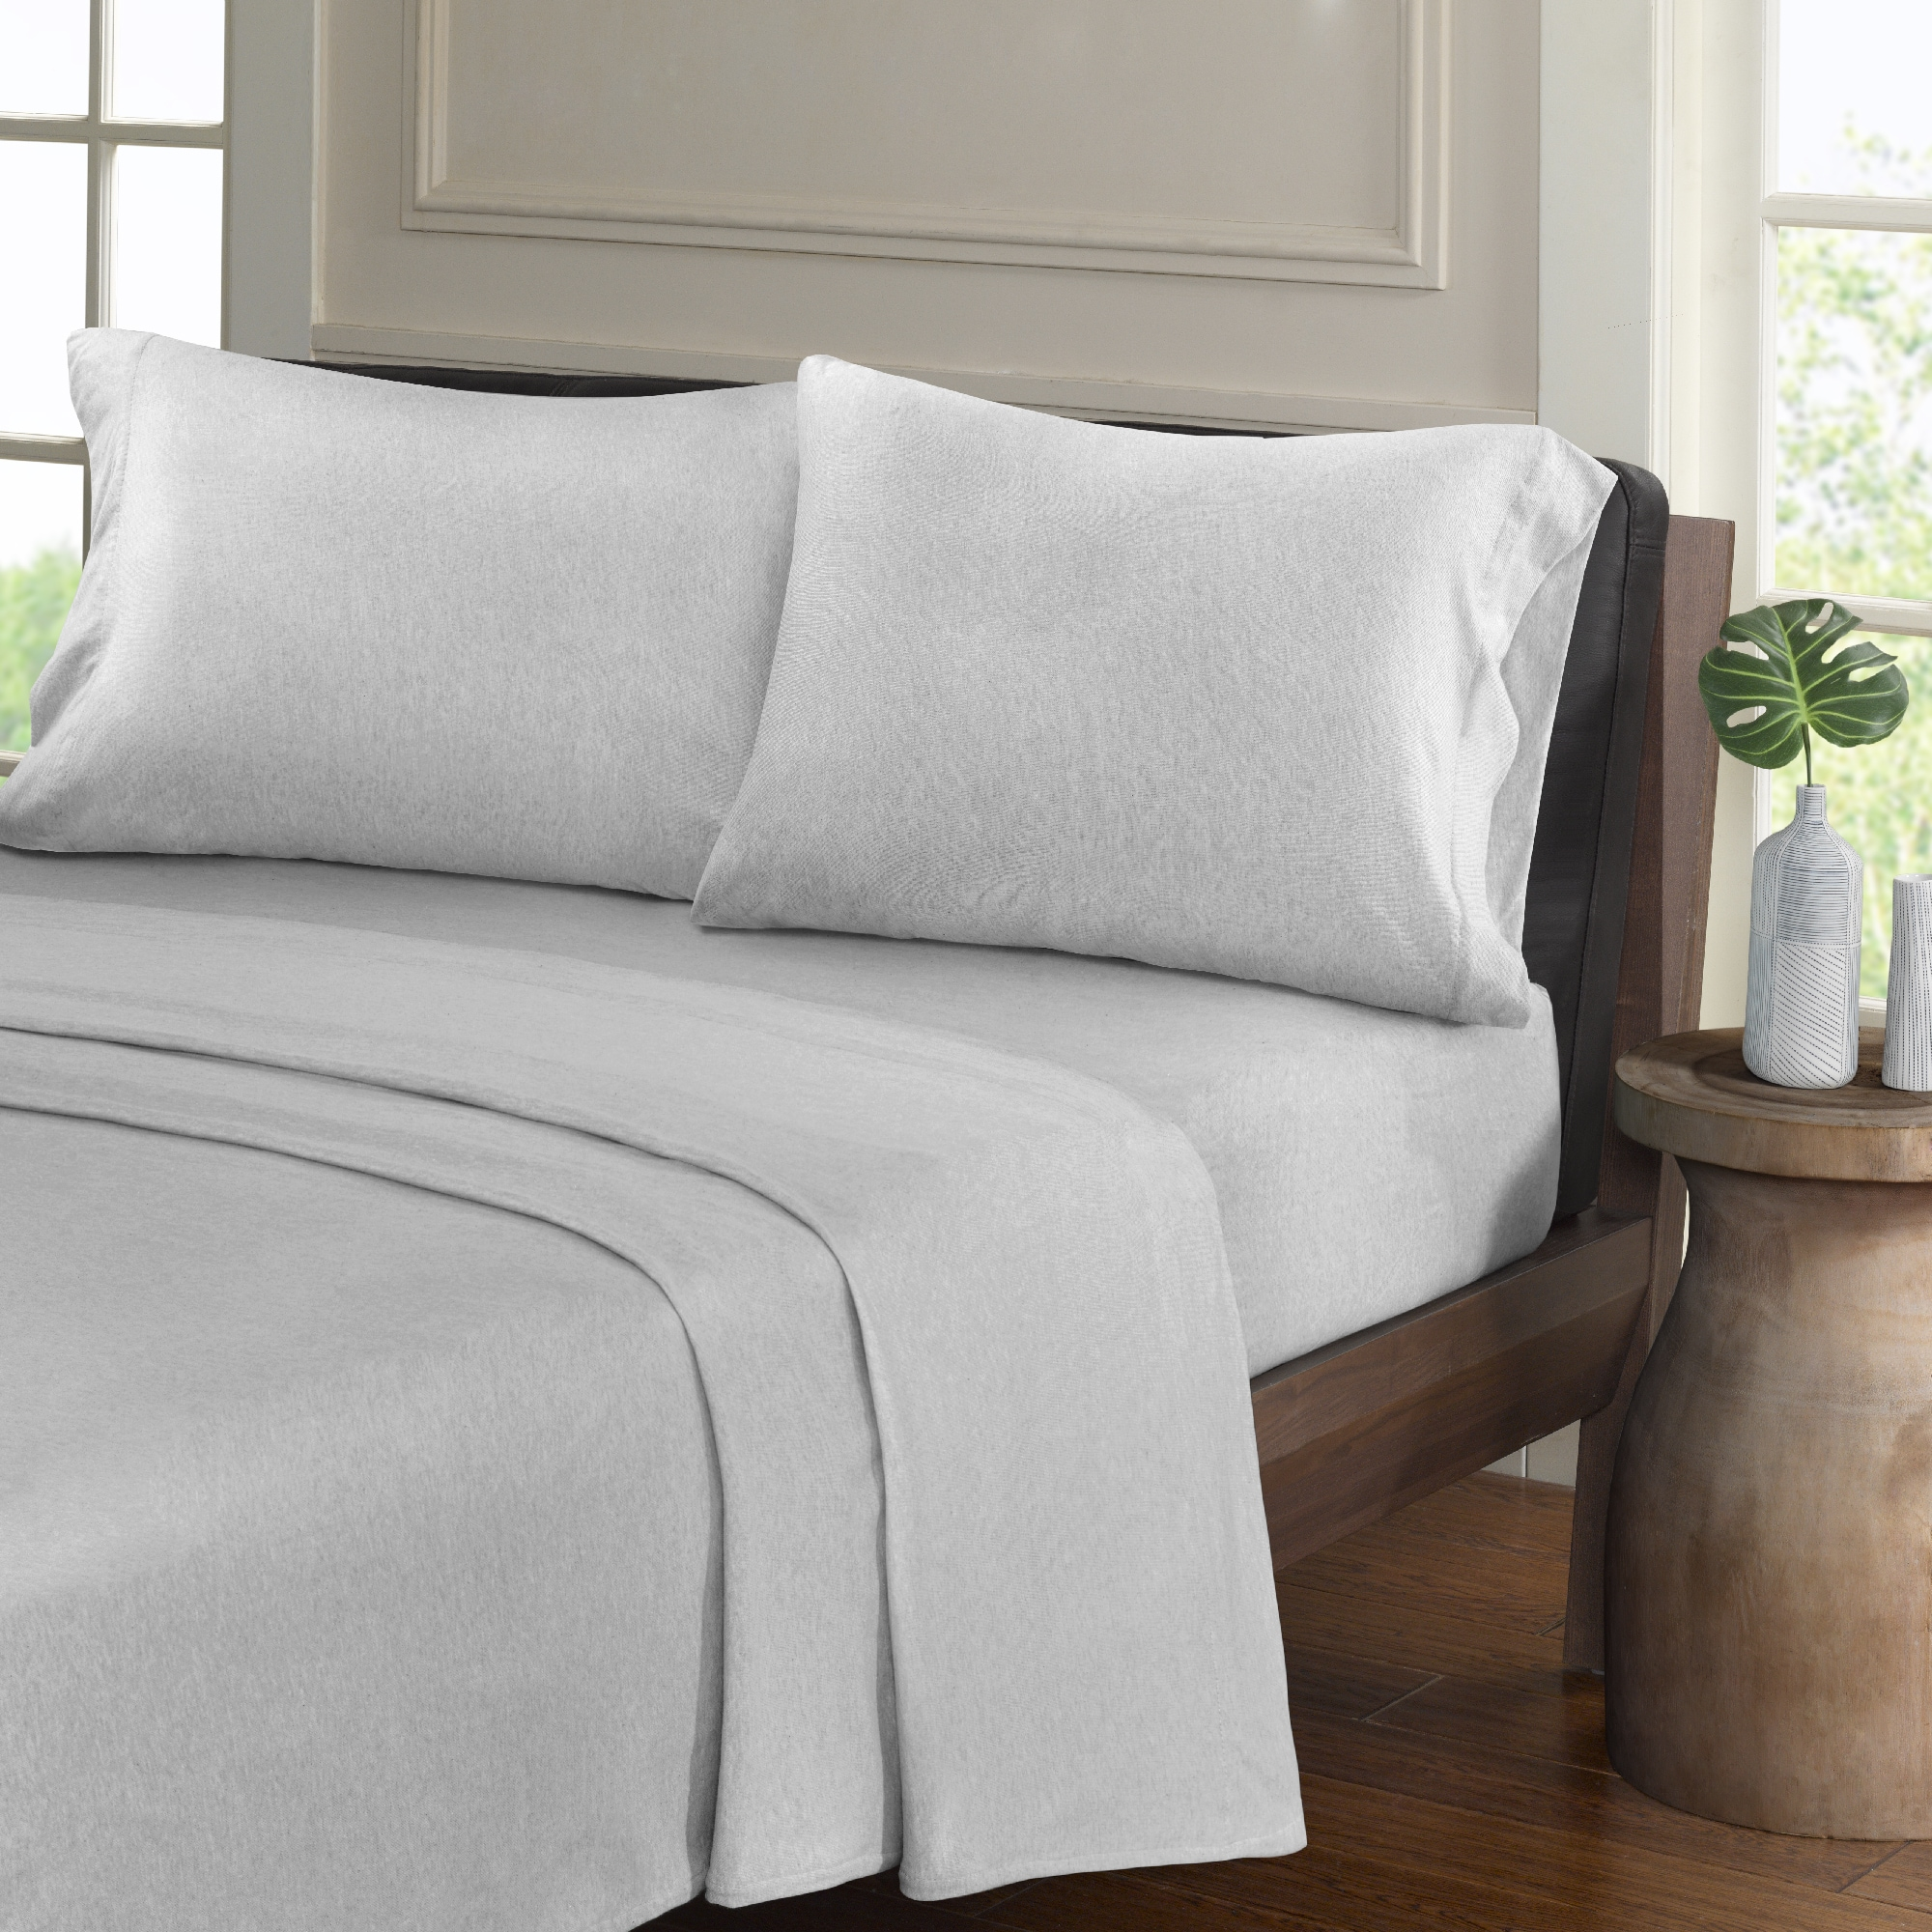 Shop Urban Habitat Heathered Cotton Jersey Knit Sheet Set   Free Shipping  On Orders Over $45   Overstock.com   16936159